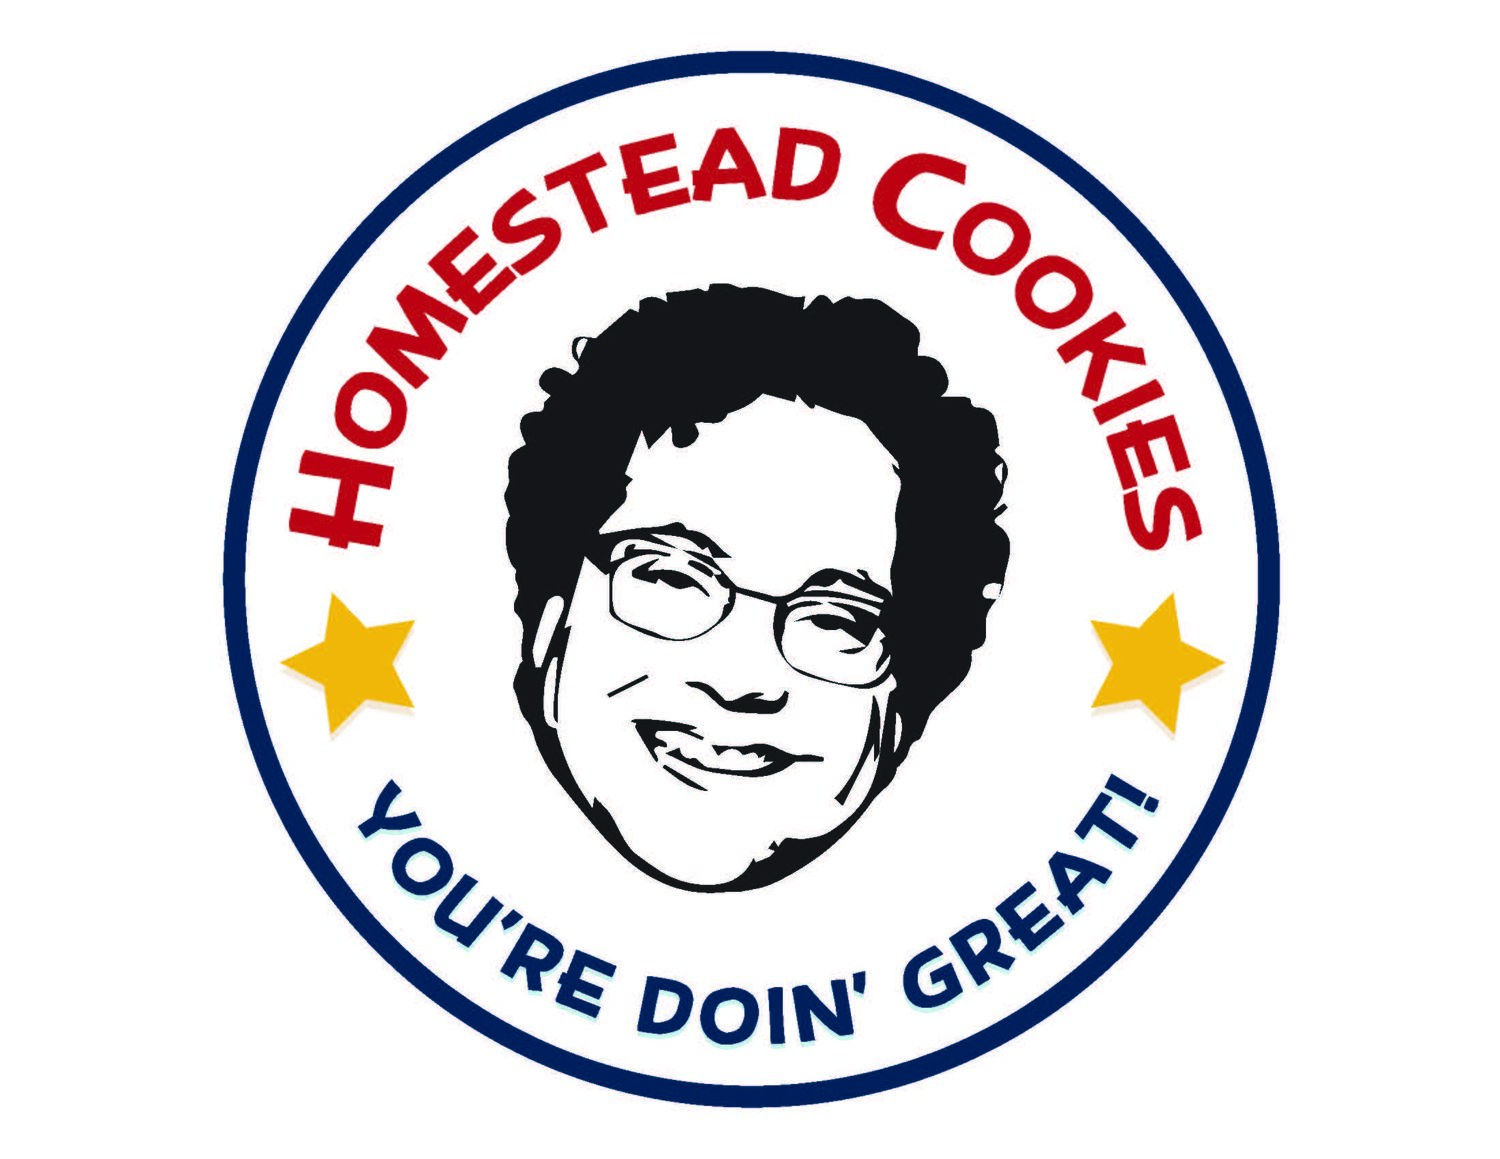 Homestead Cookies